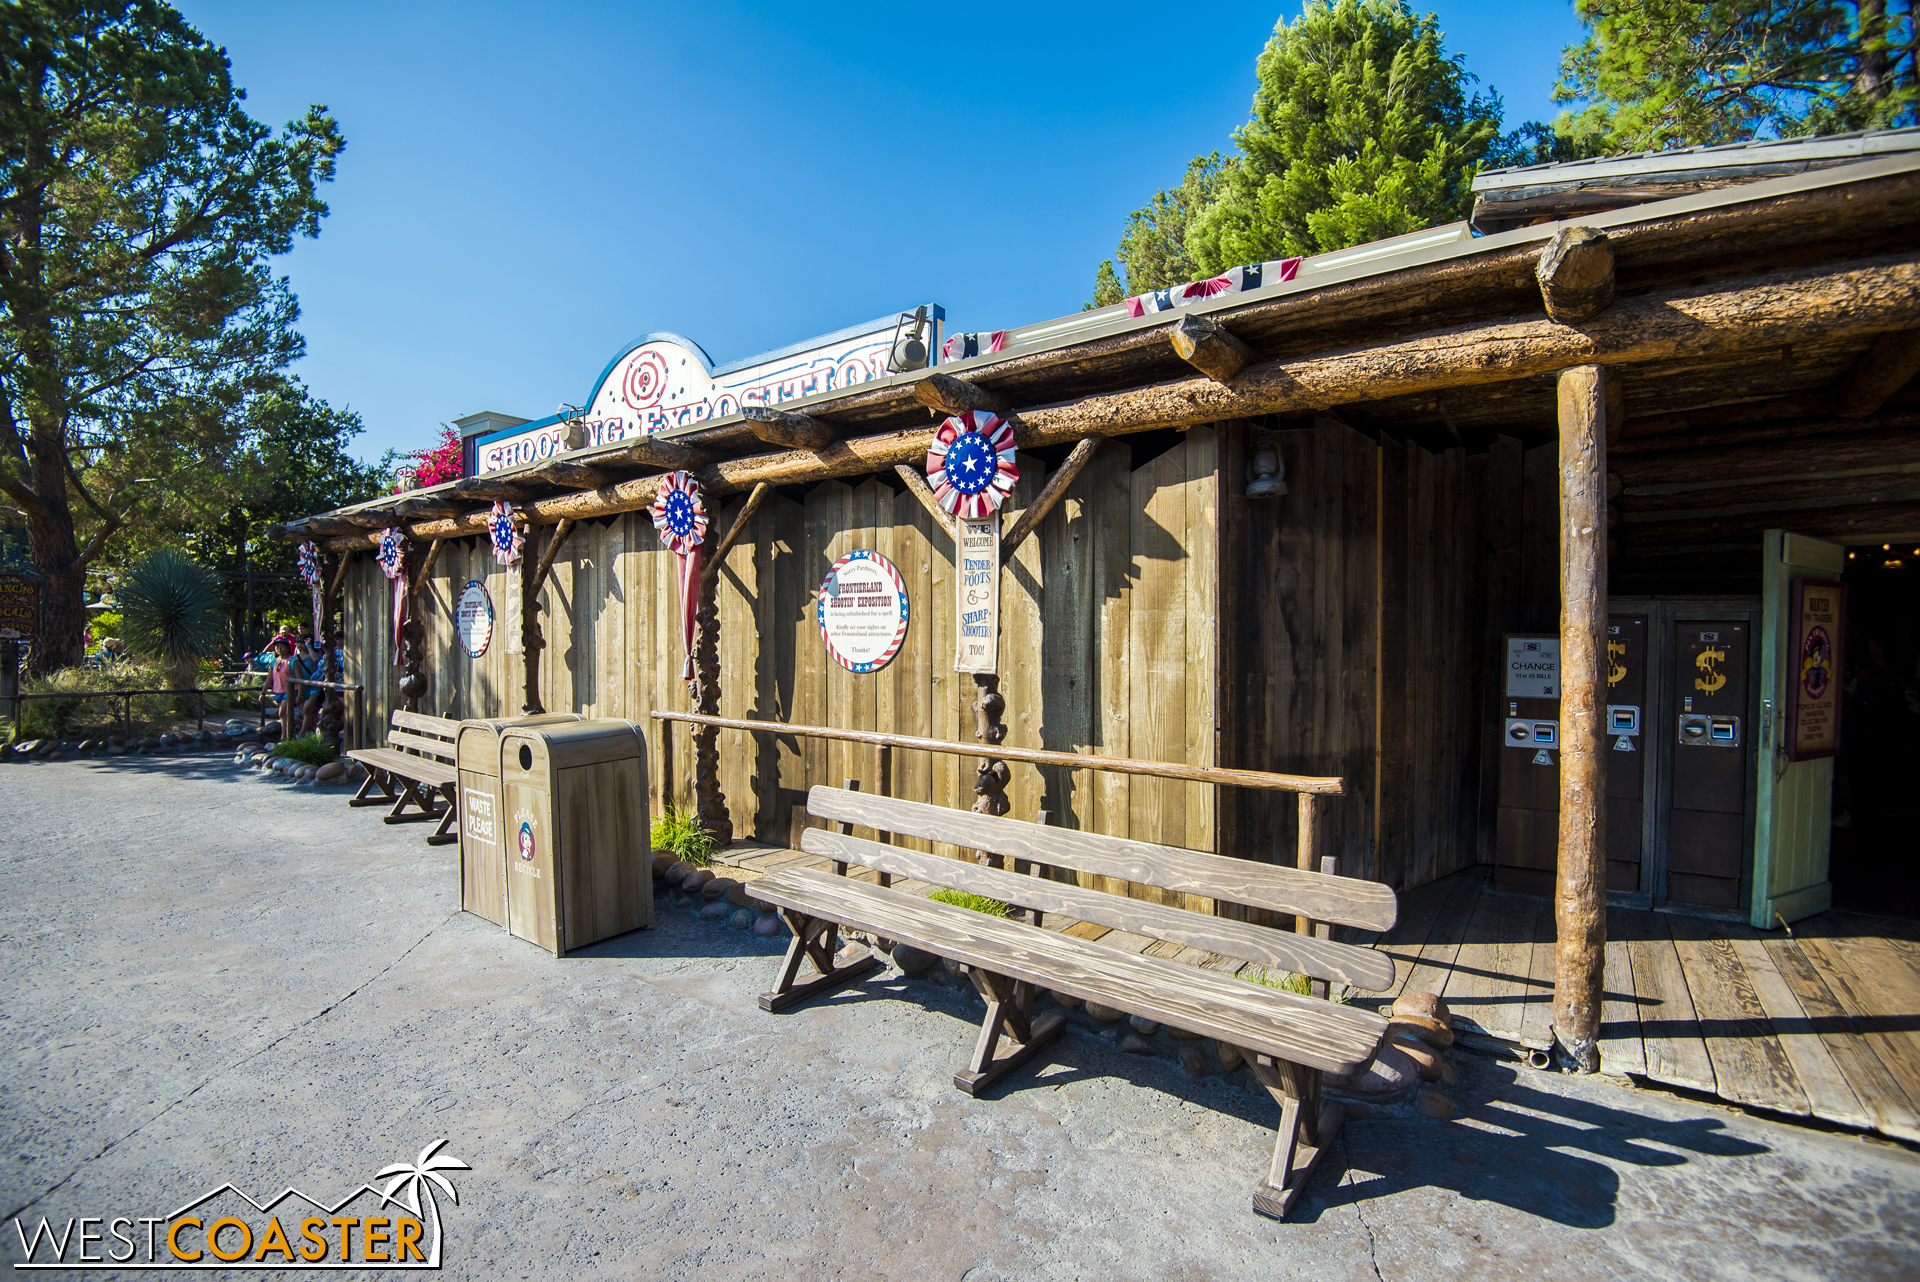 The Frontierland Shooting Gallery is currently closed for refurbishment.